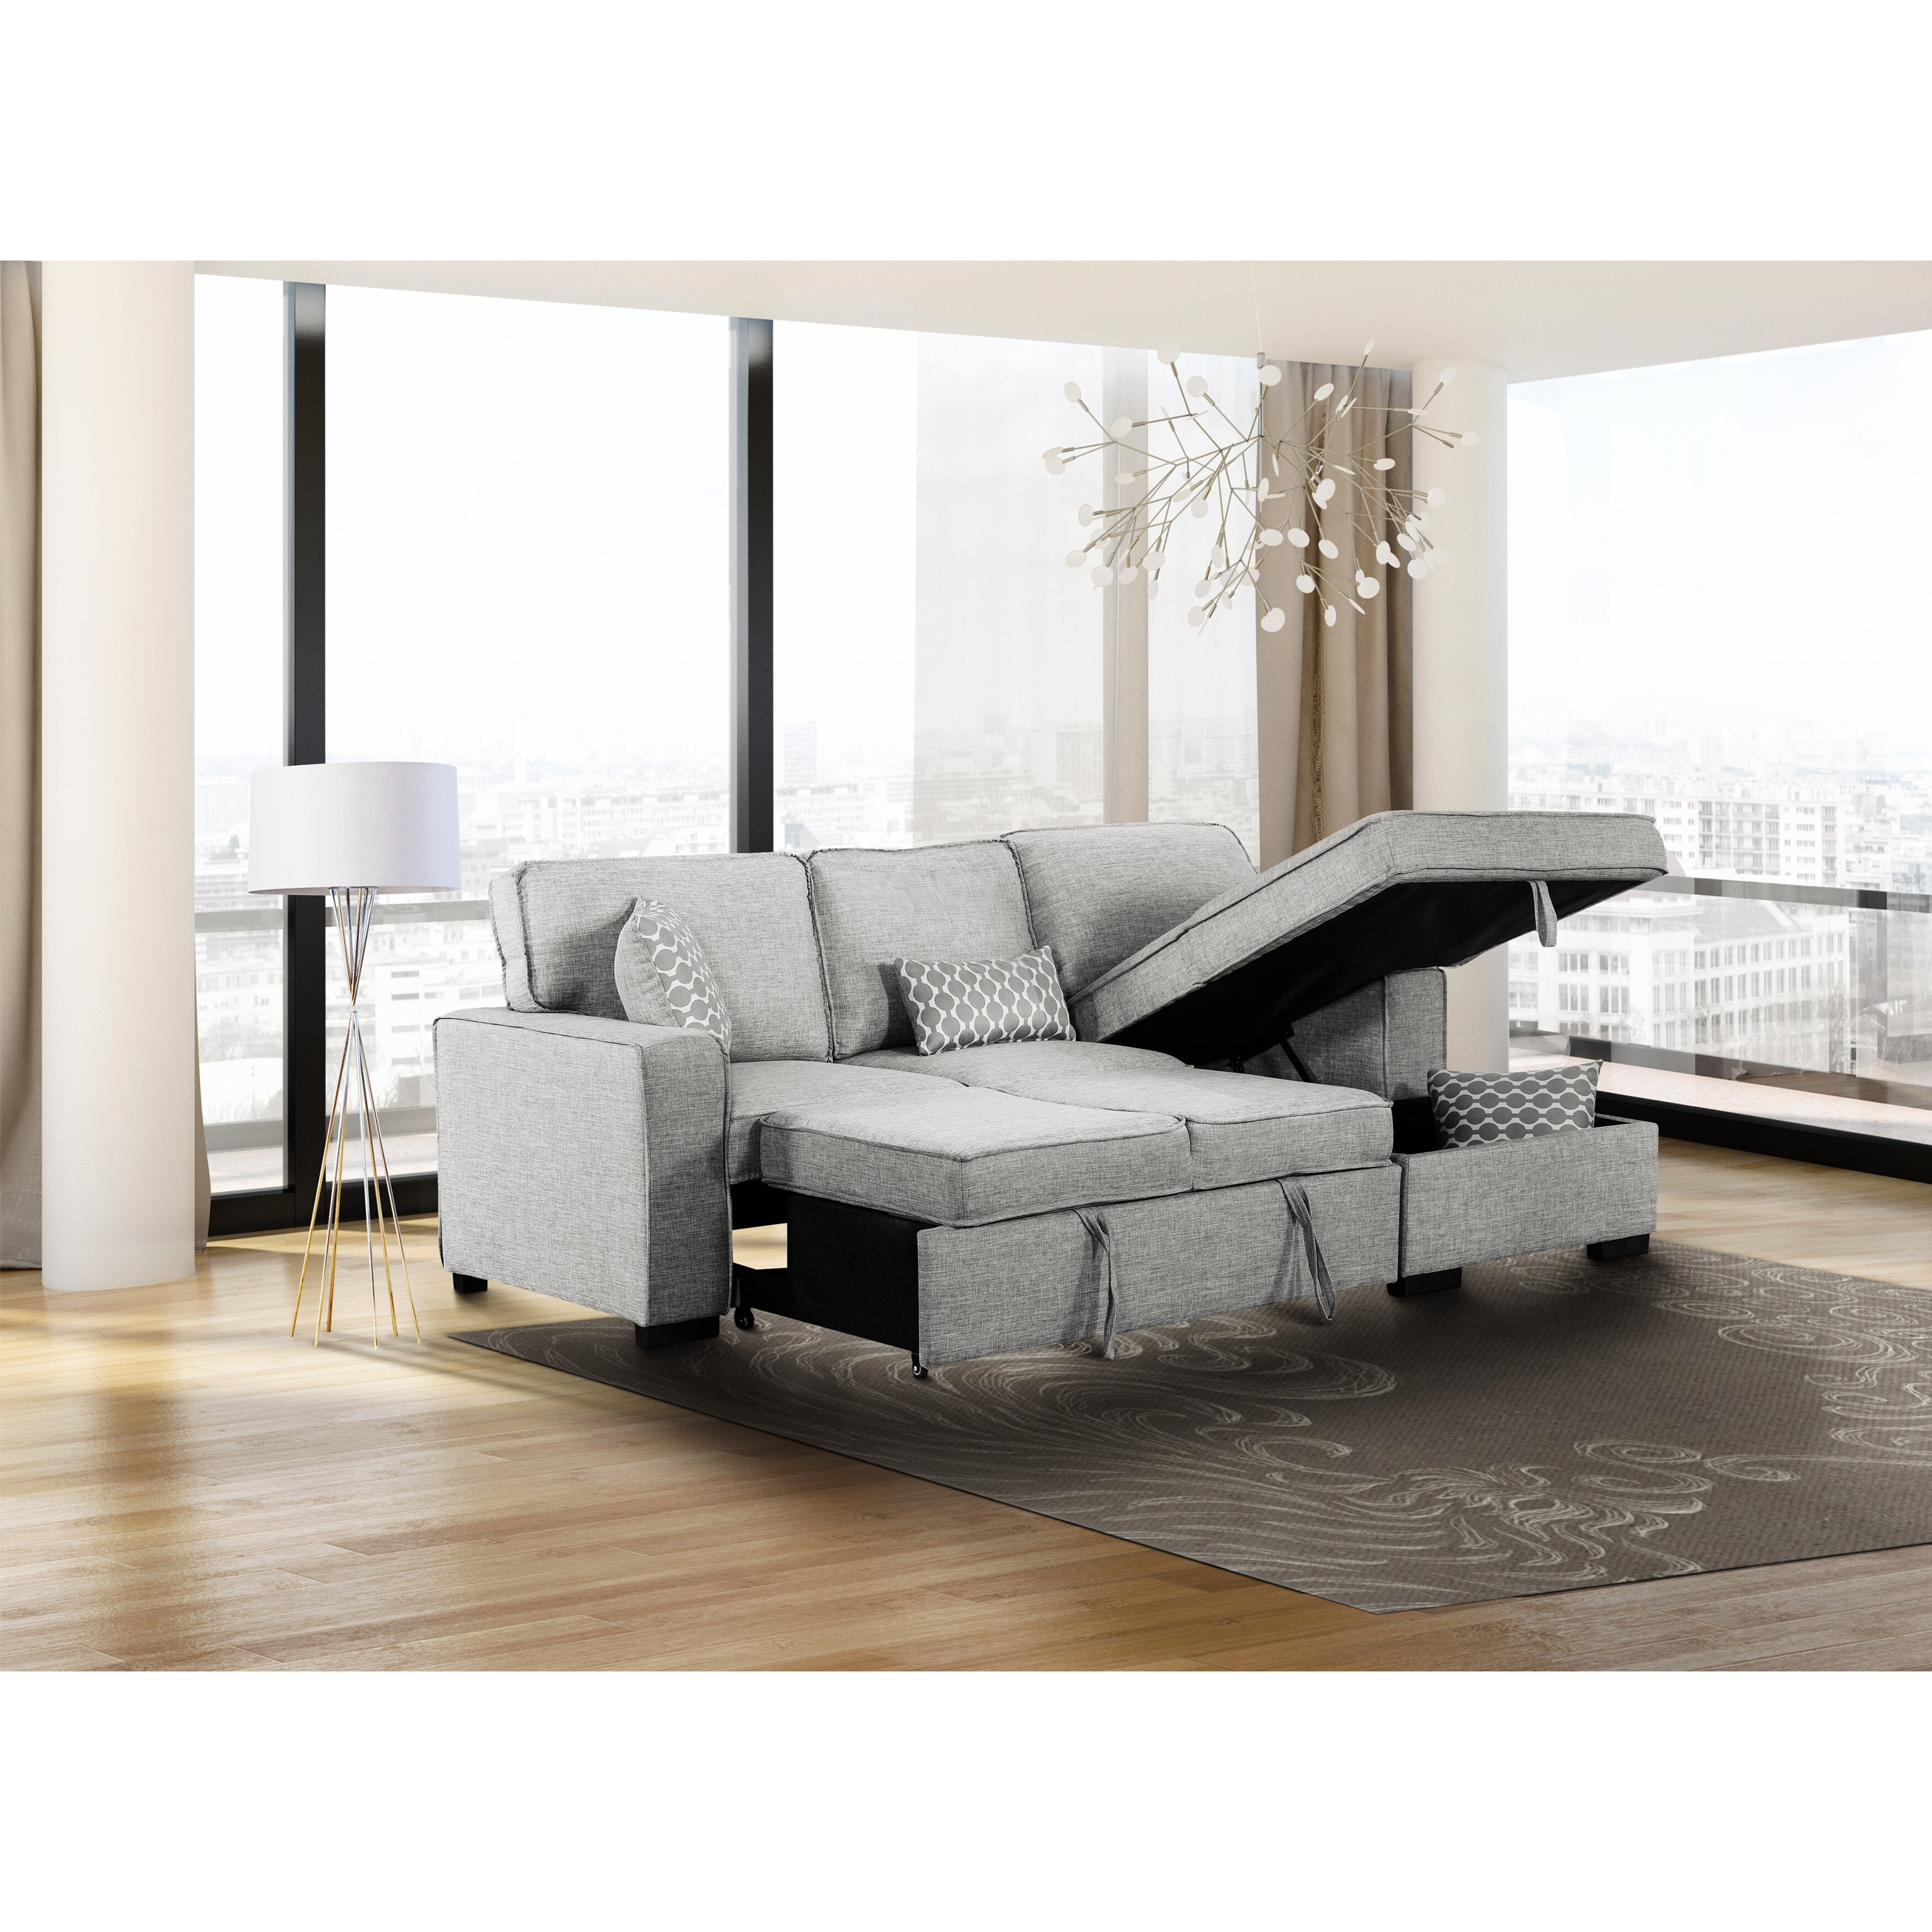 leo modern grey sectional sofa bed sleeper with storage chaise